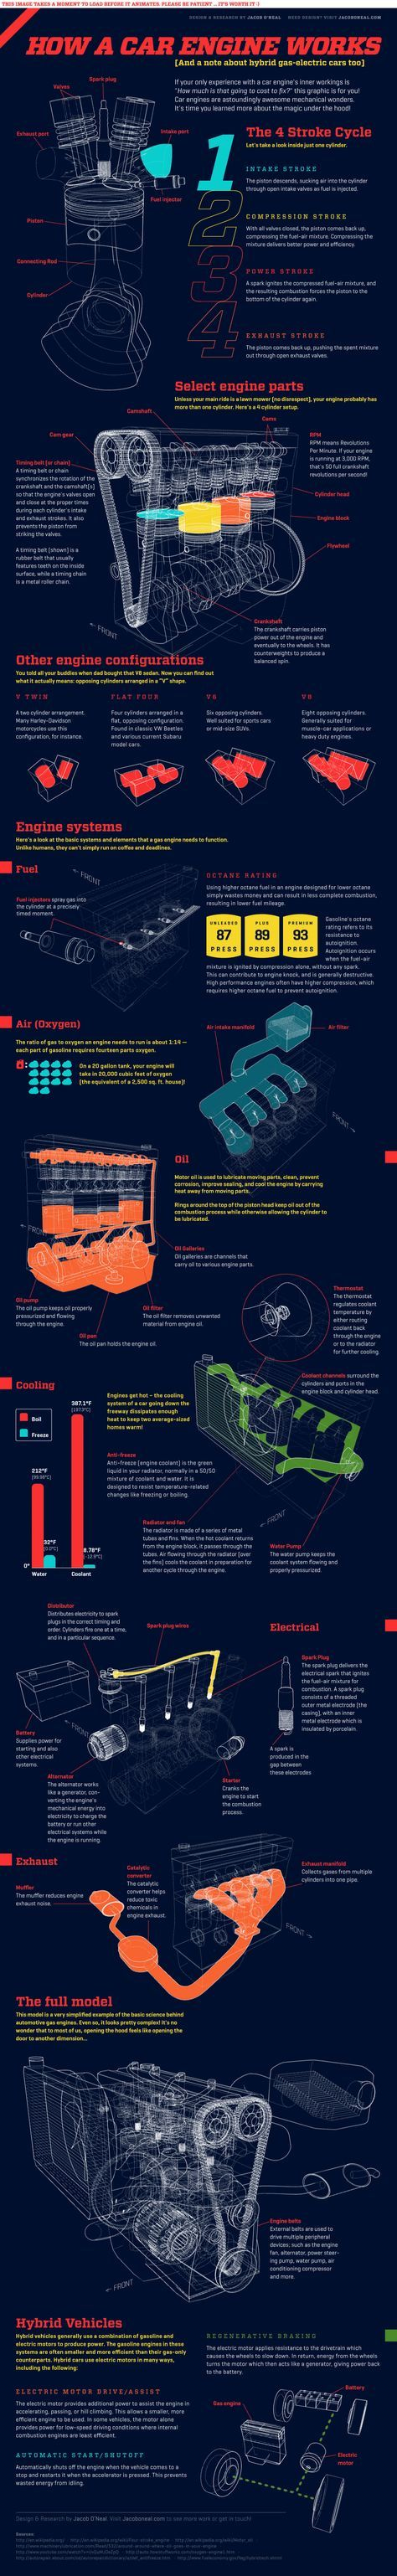 Brilliant animated #infographic looking at the inner workings of a car engine. It's incredibly detailed (via http://news-by-design.com/how-a-car-engine-works-animated/)